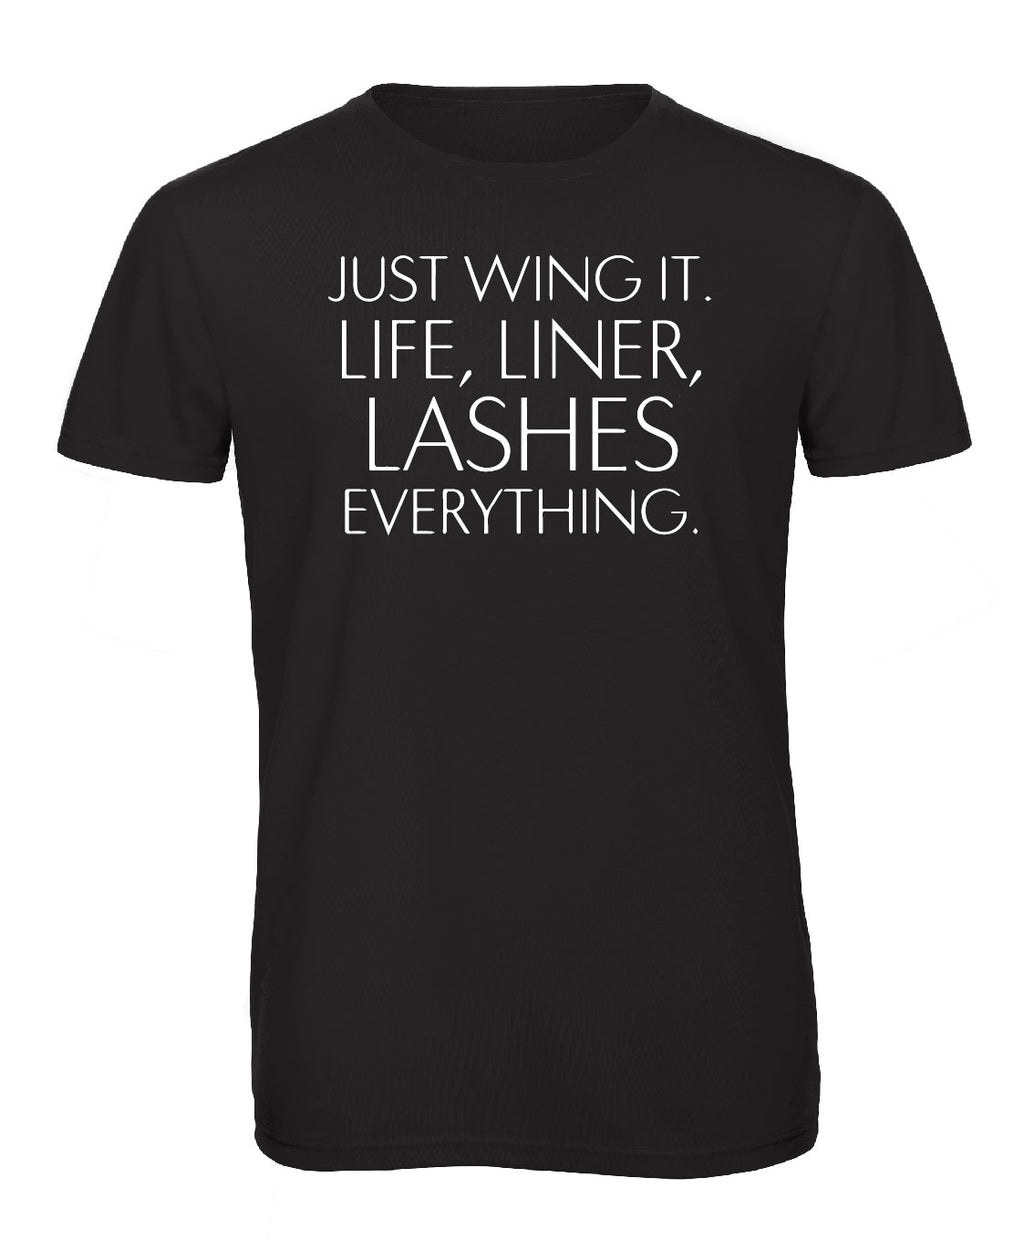 Lashes Crew Neck - Available in Black and White Tees